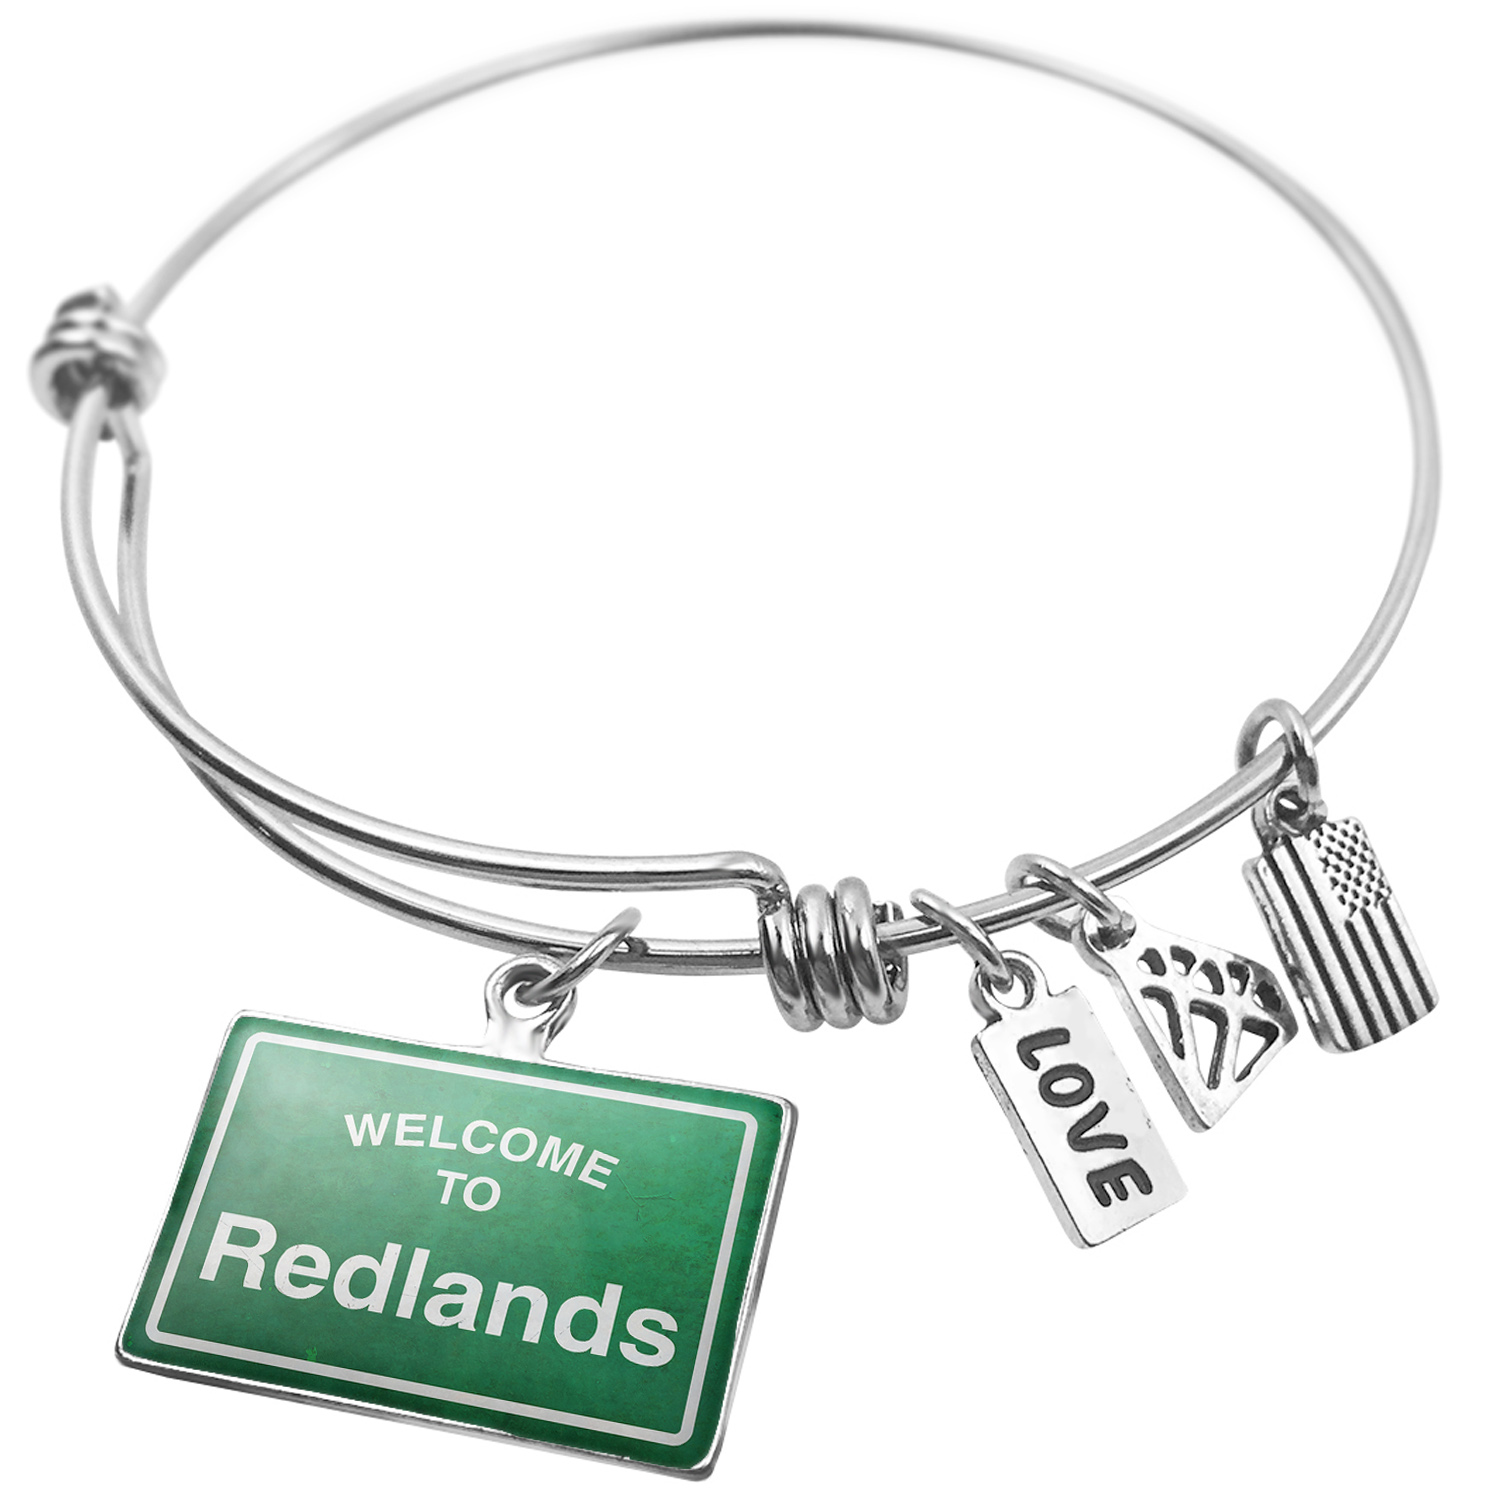 Expandable Wire Bangle Bracelet Green Road Sign Welcome To Redlands - NEONBLOND